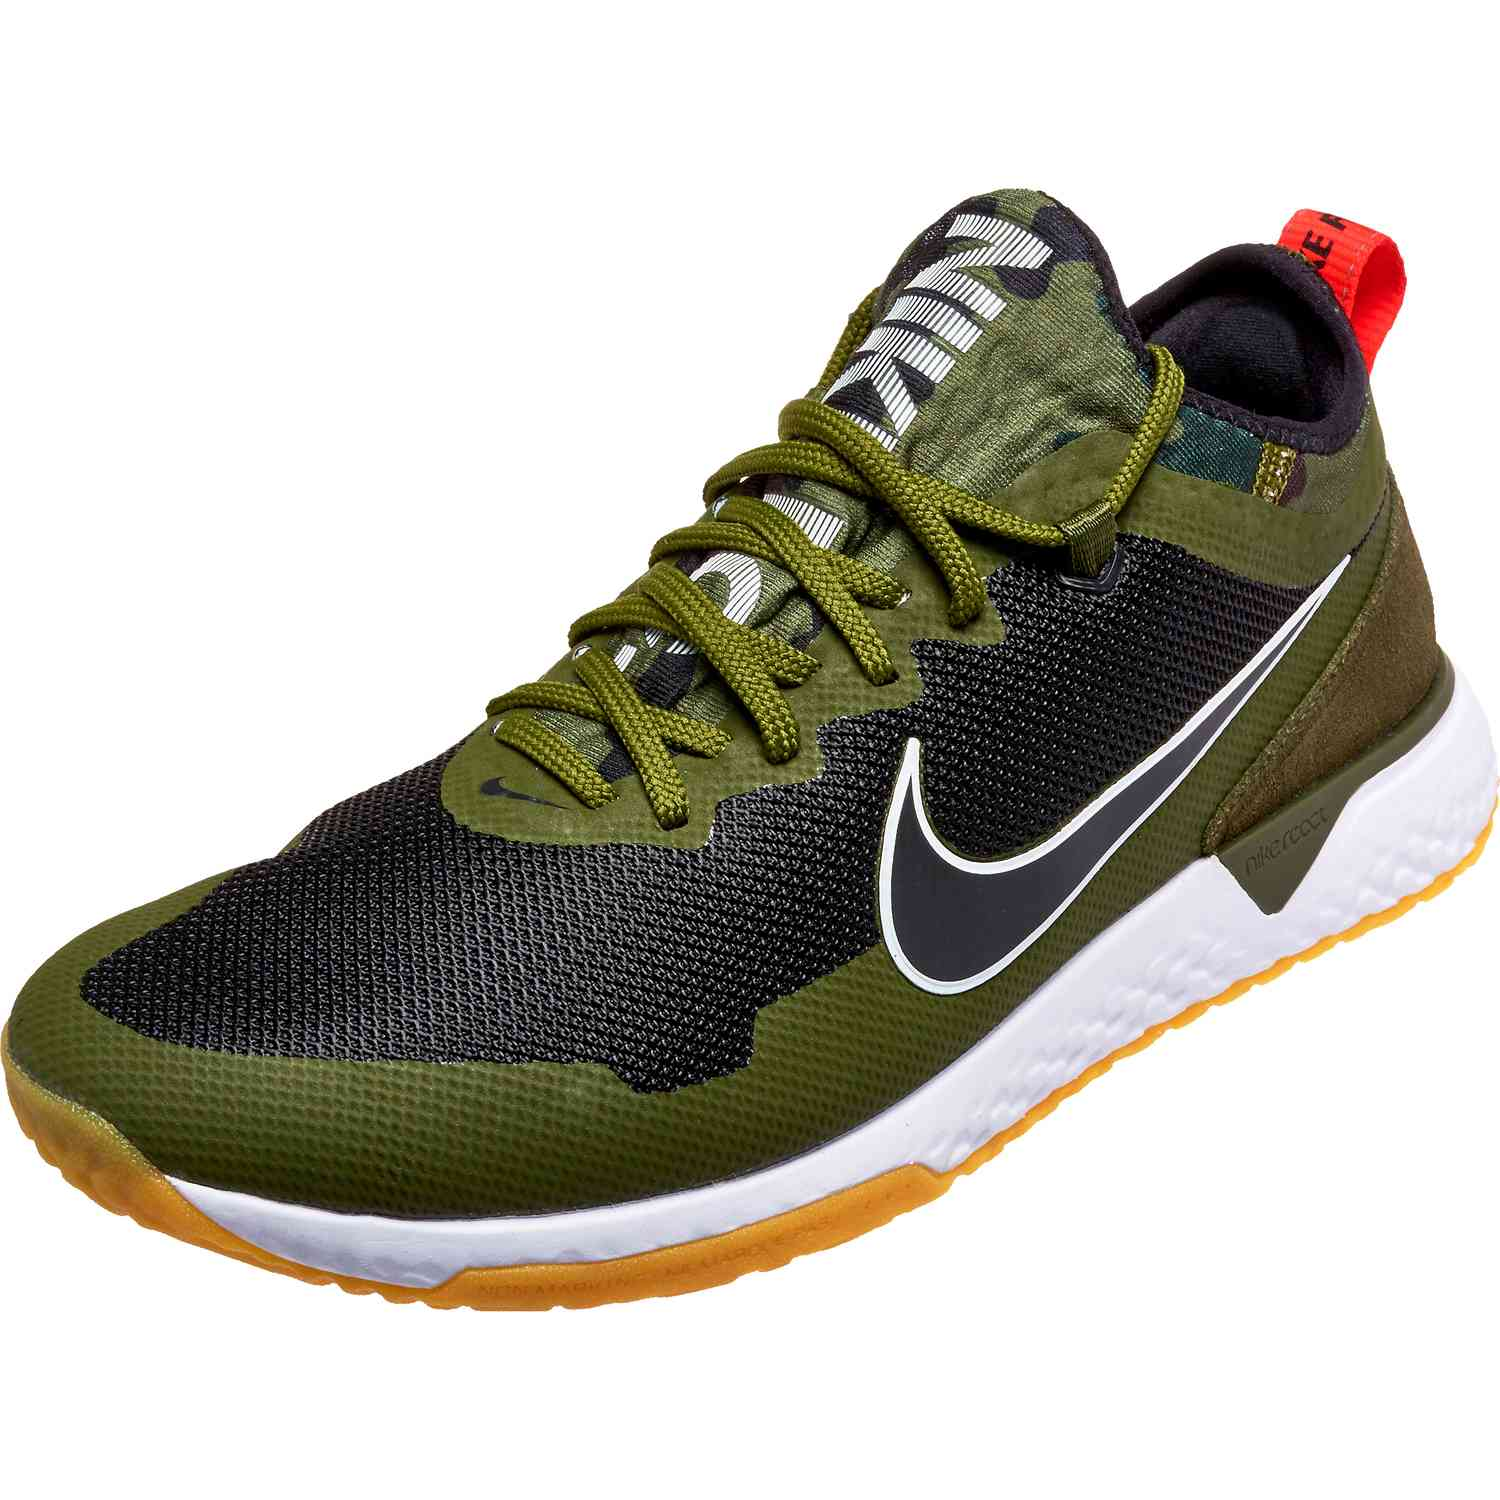 8eb5724814a1 Nike FC React - Black and Green - SoccerPro.com